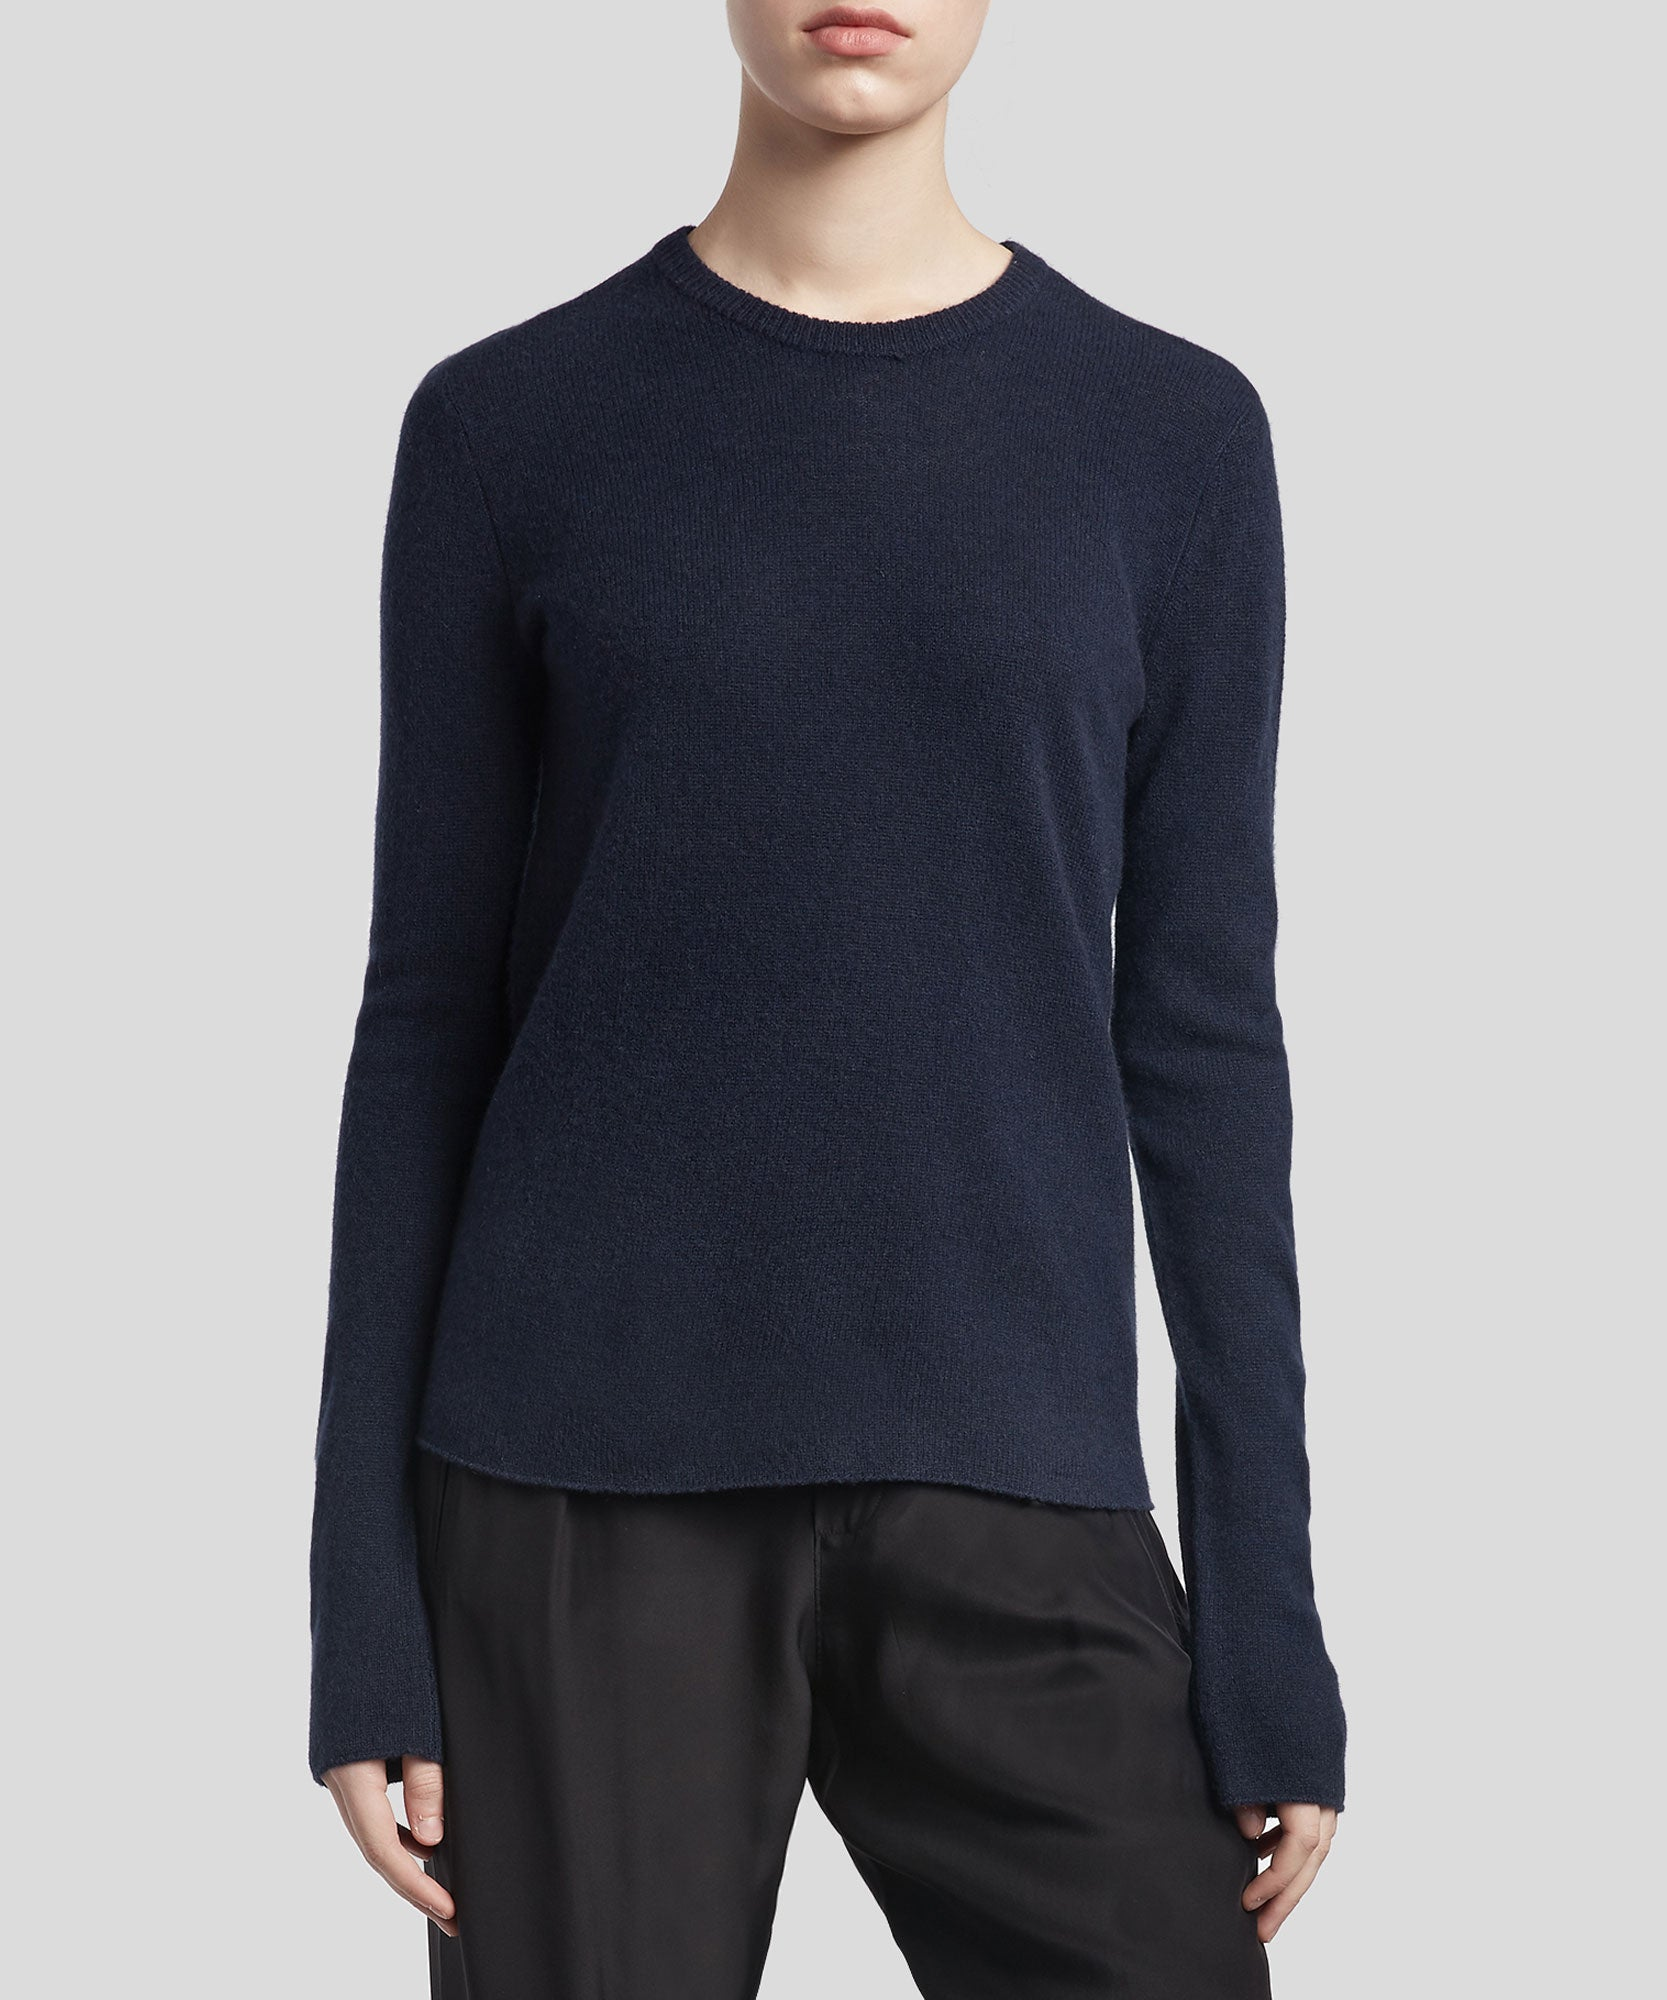 Midnight Cashmere Crew Neck Sweater - Women's Luxe Sweater by ATM Anthony Thomas Melillo